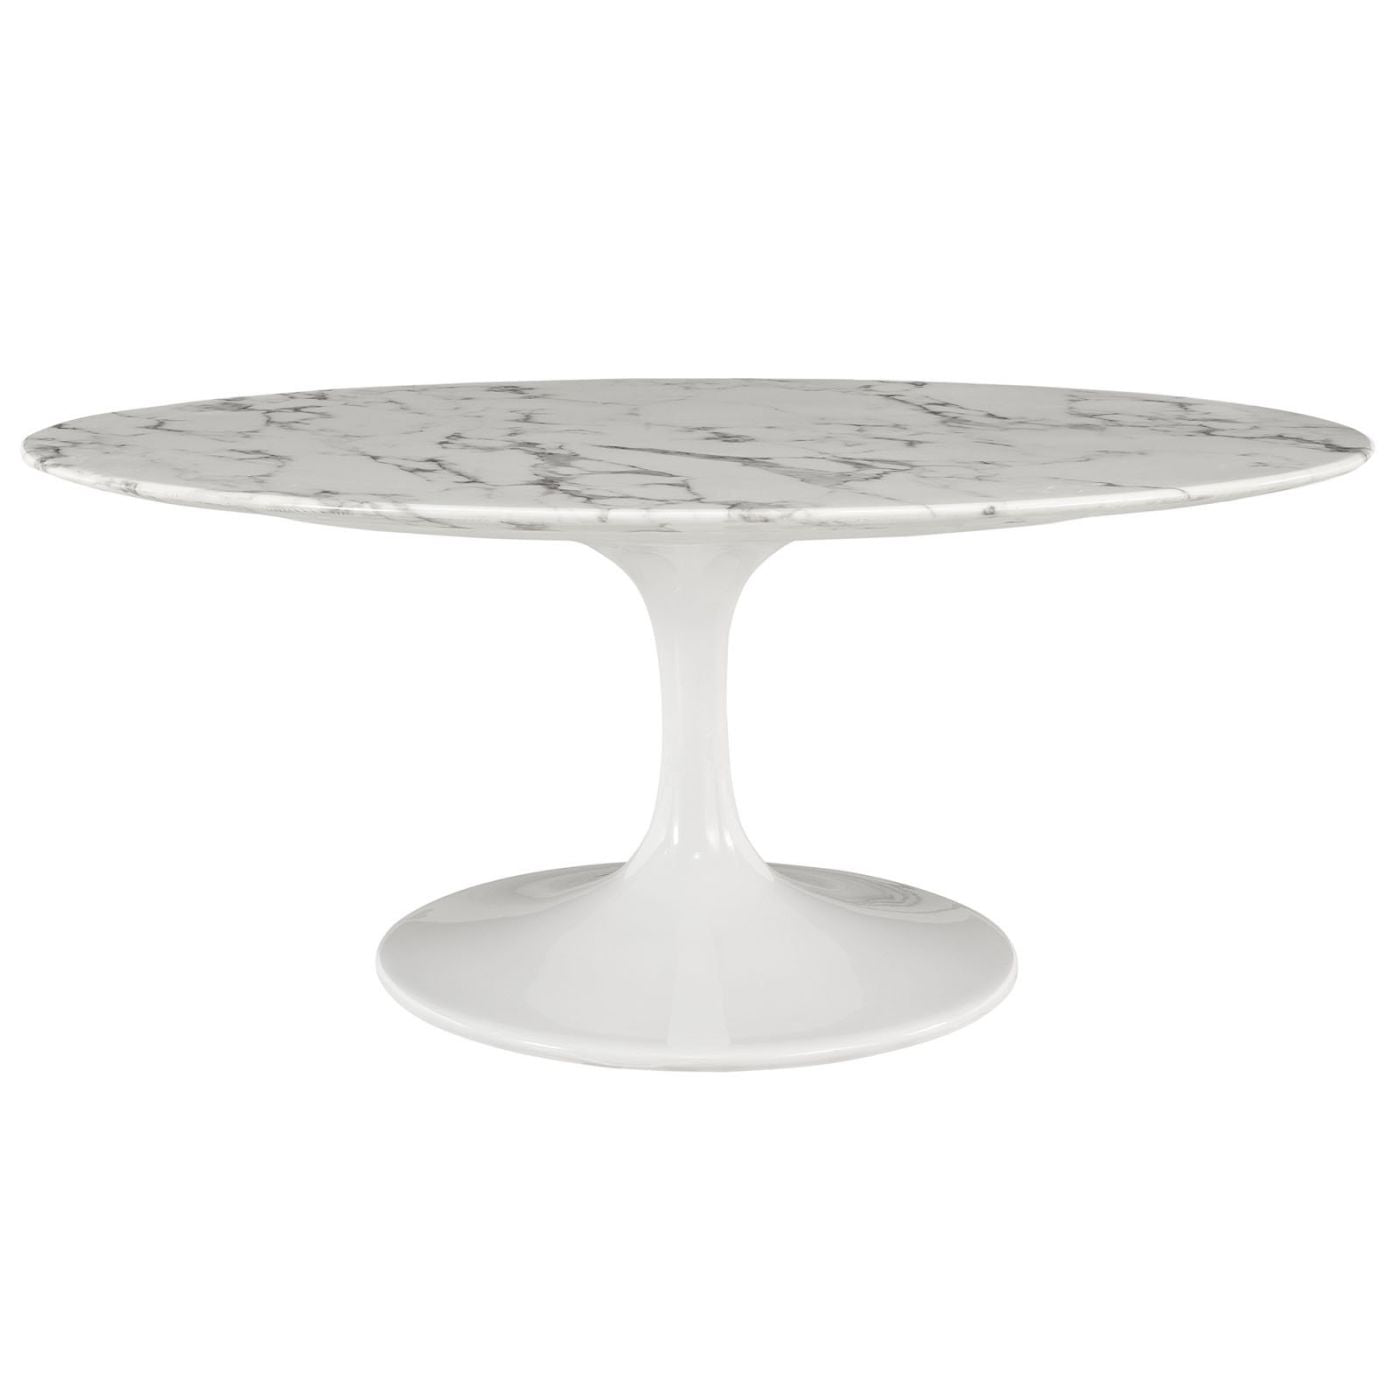 Modway Coffee Tables On Sale Eei 1140 Whi Lippa 42 Oval Shaped Artificial Marble Coffee Table Only Only 491 55 At Contemporary Furniture Warehouse